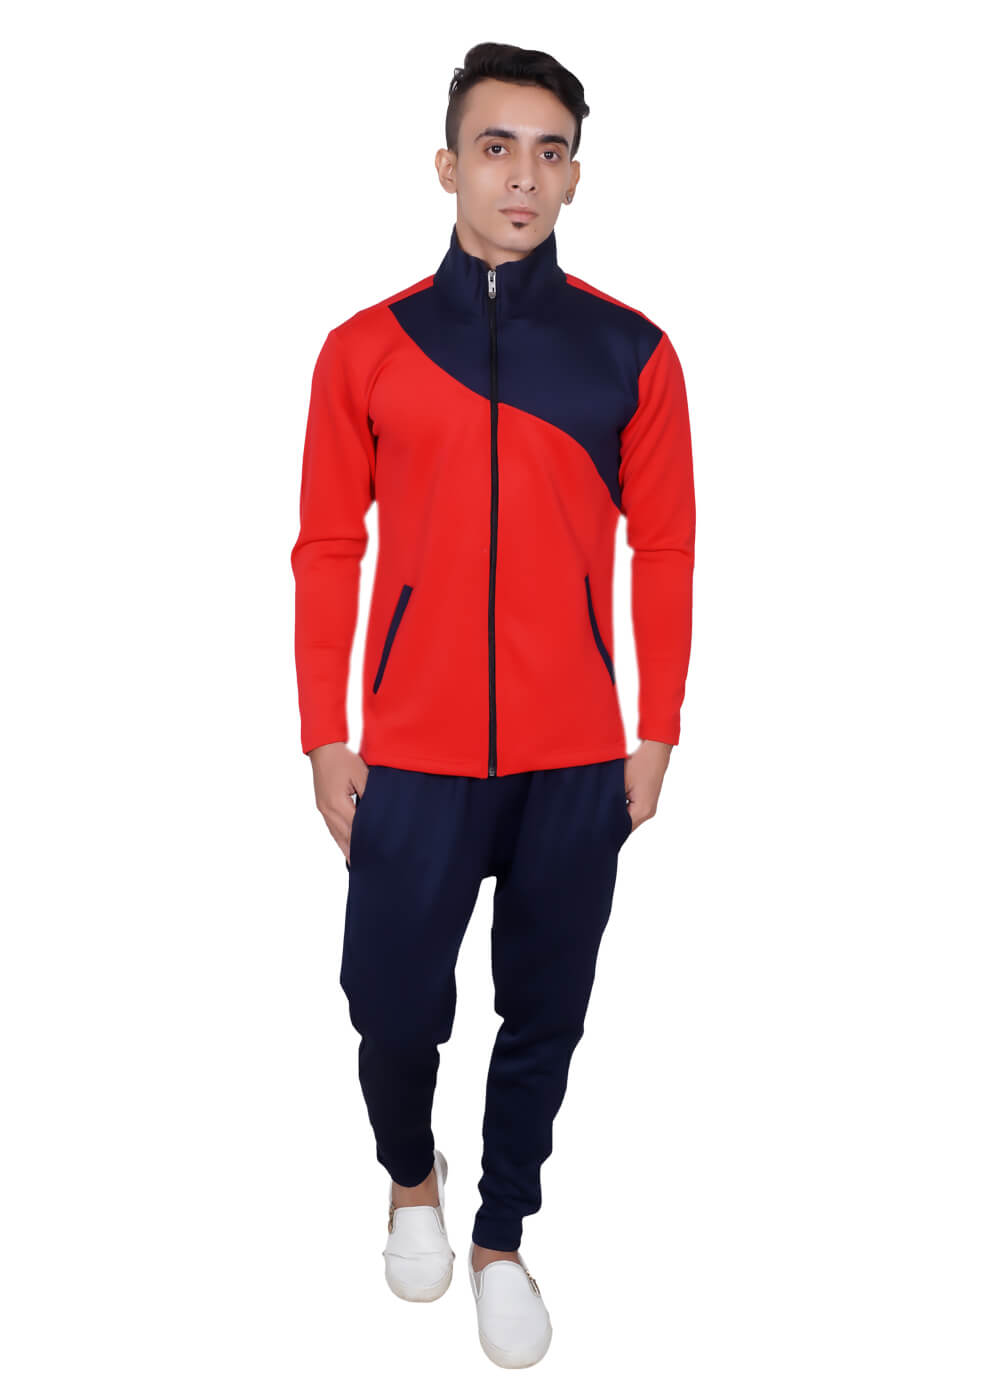 Cheap Tracksuits Manufacturers in Slovenia